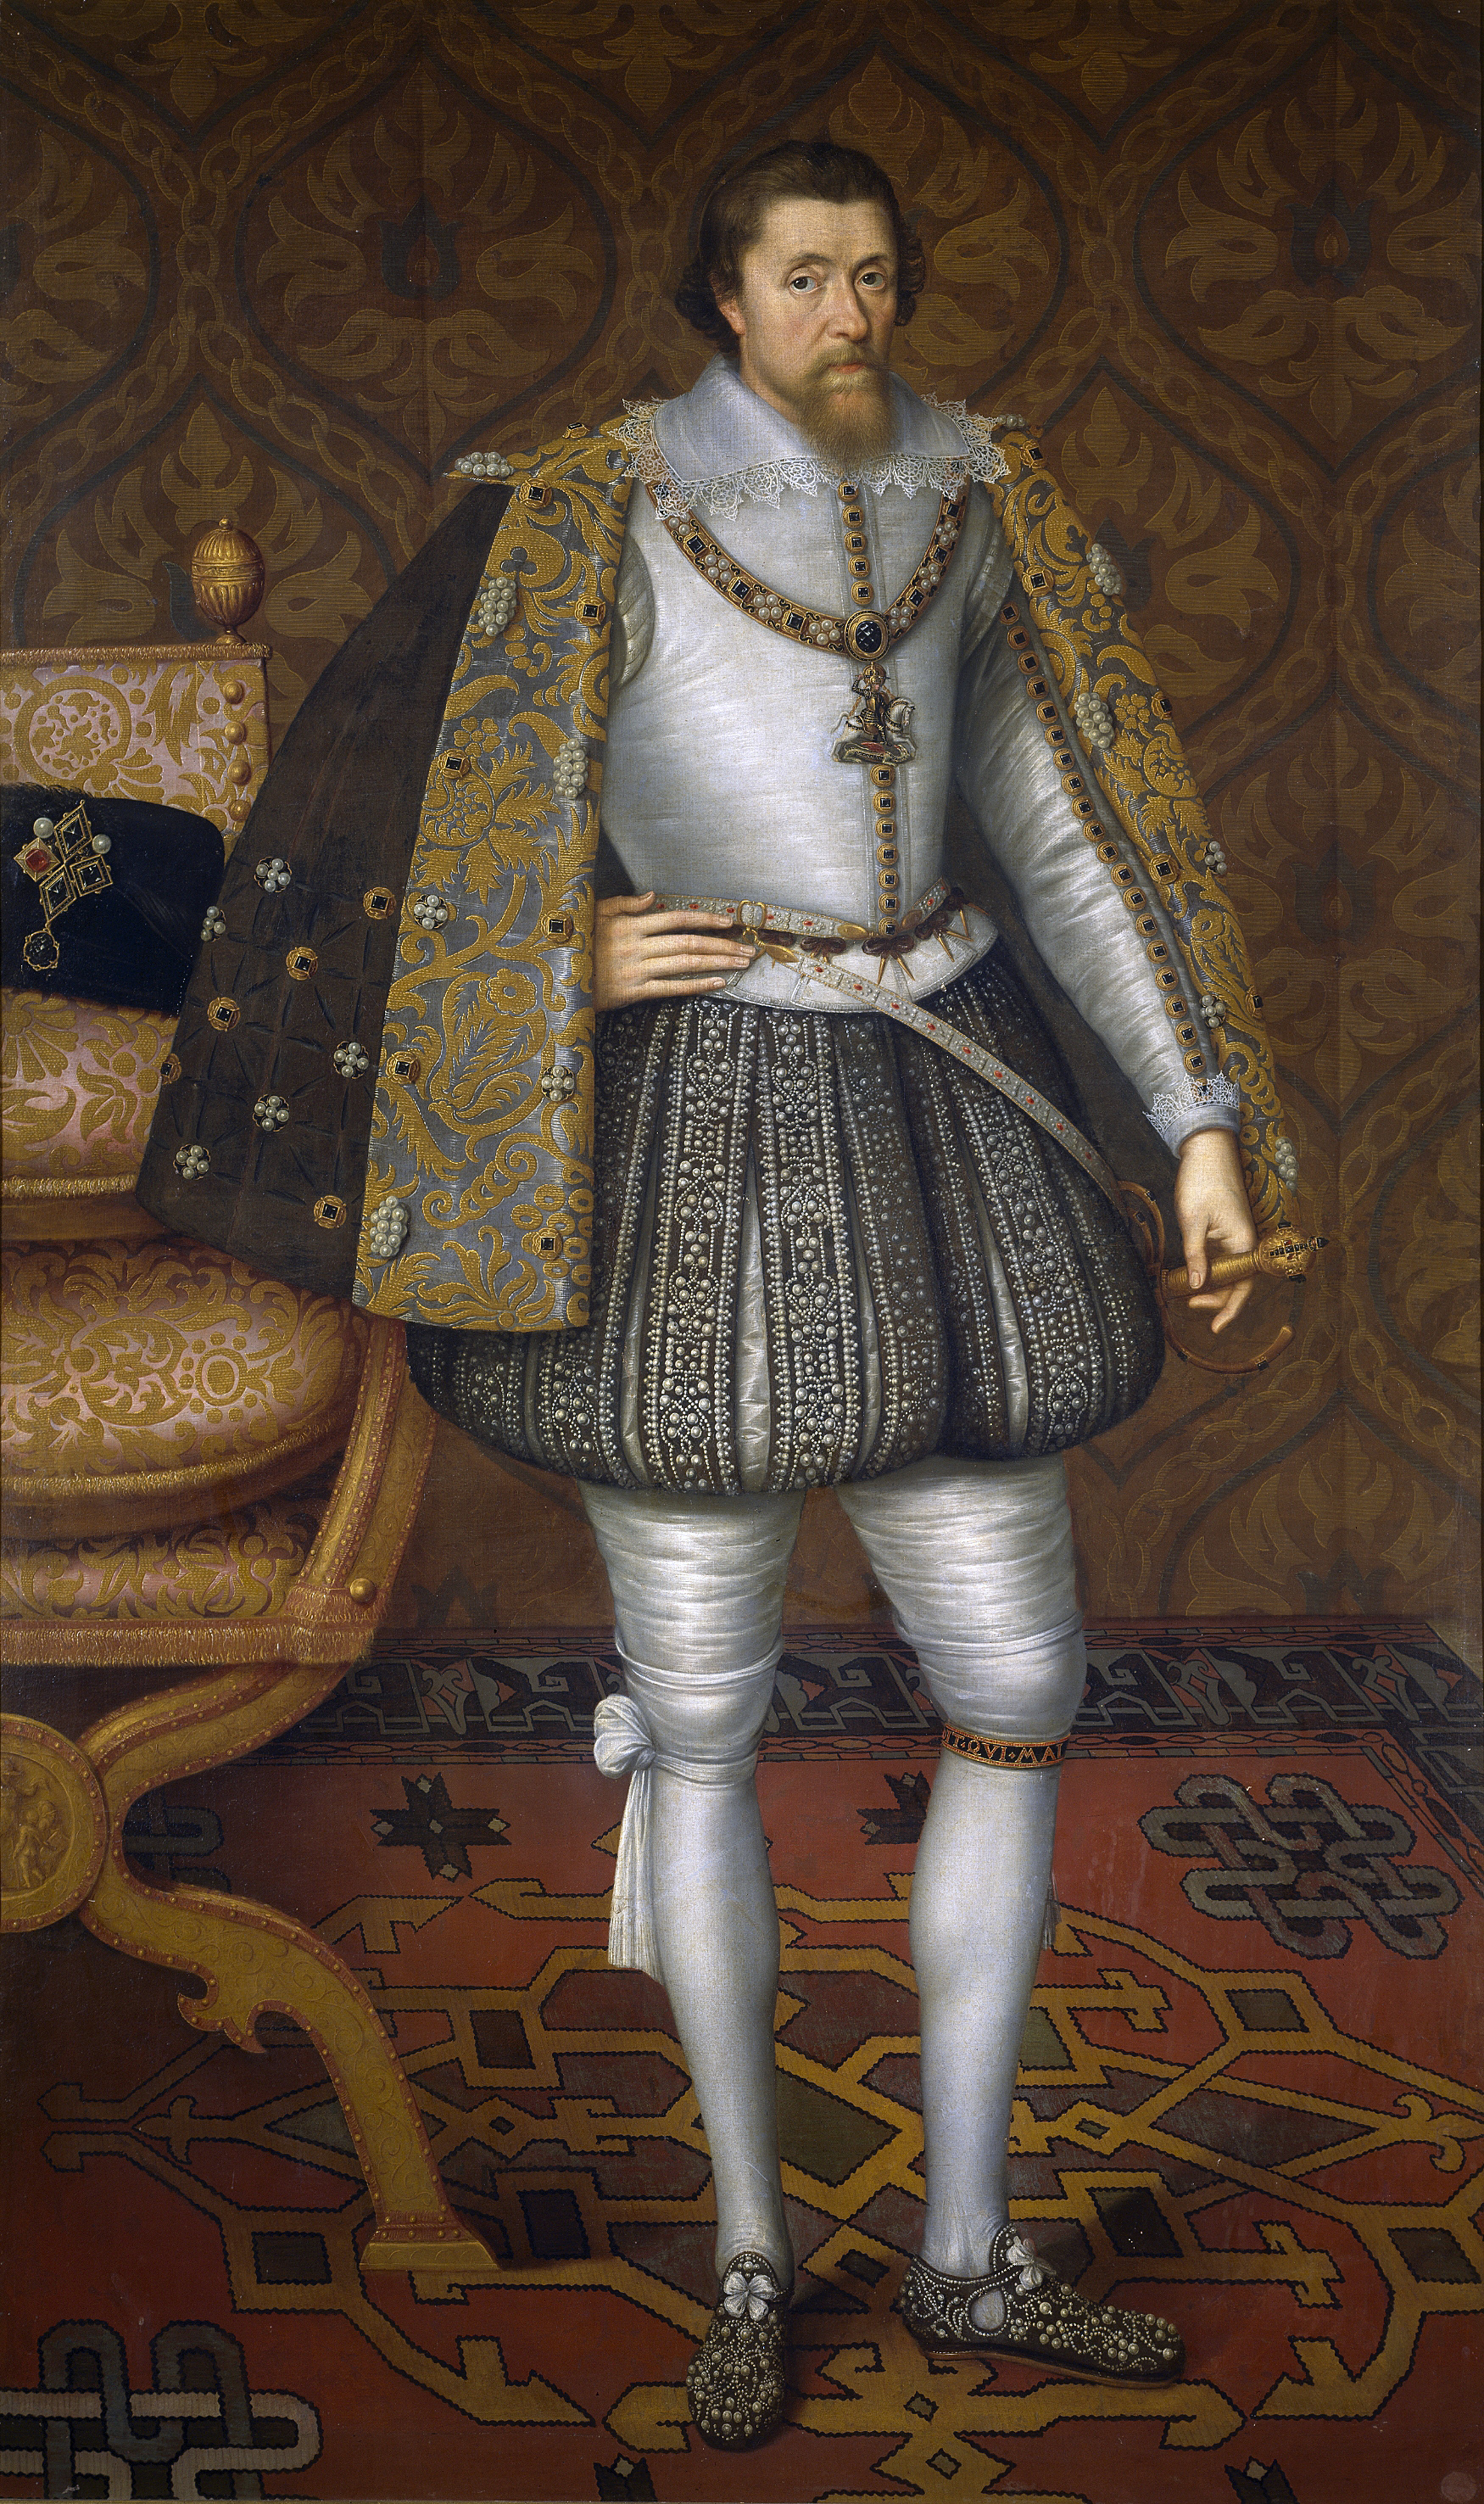 An image of King James I.